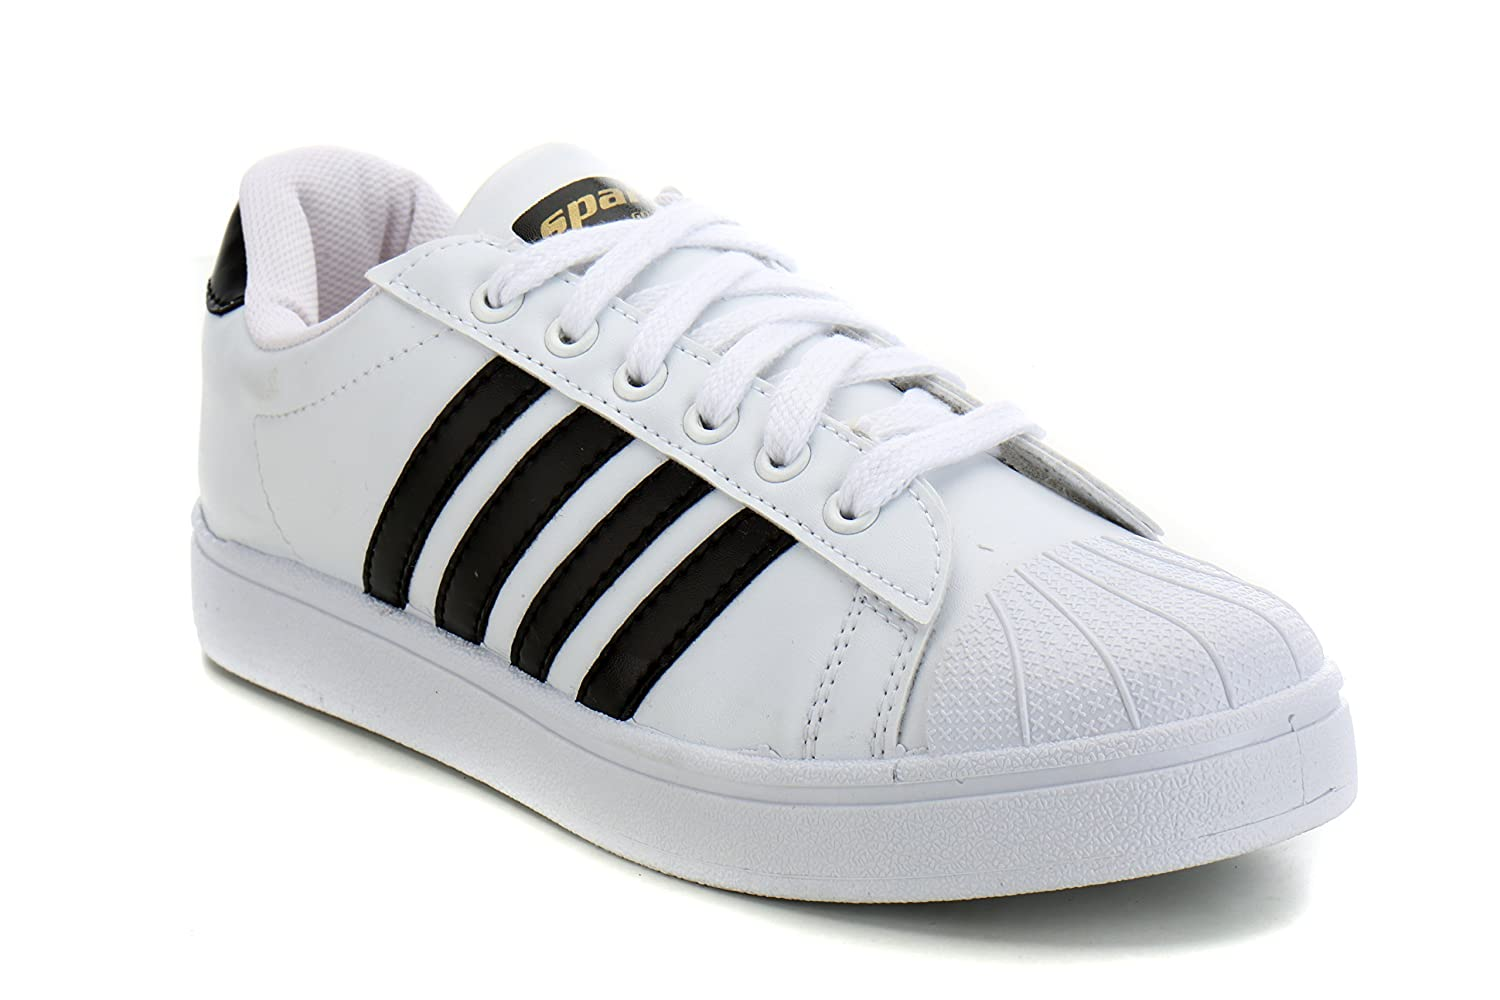 Sparx Mens White Black Sneakers-8 UK/India (42 EU) (SD0323G_WHBK0008)